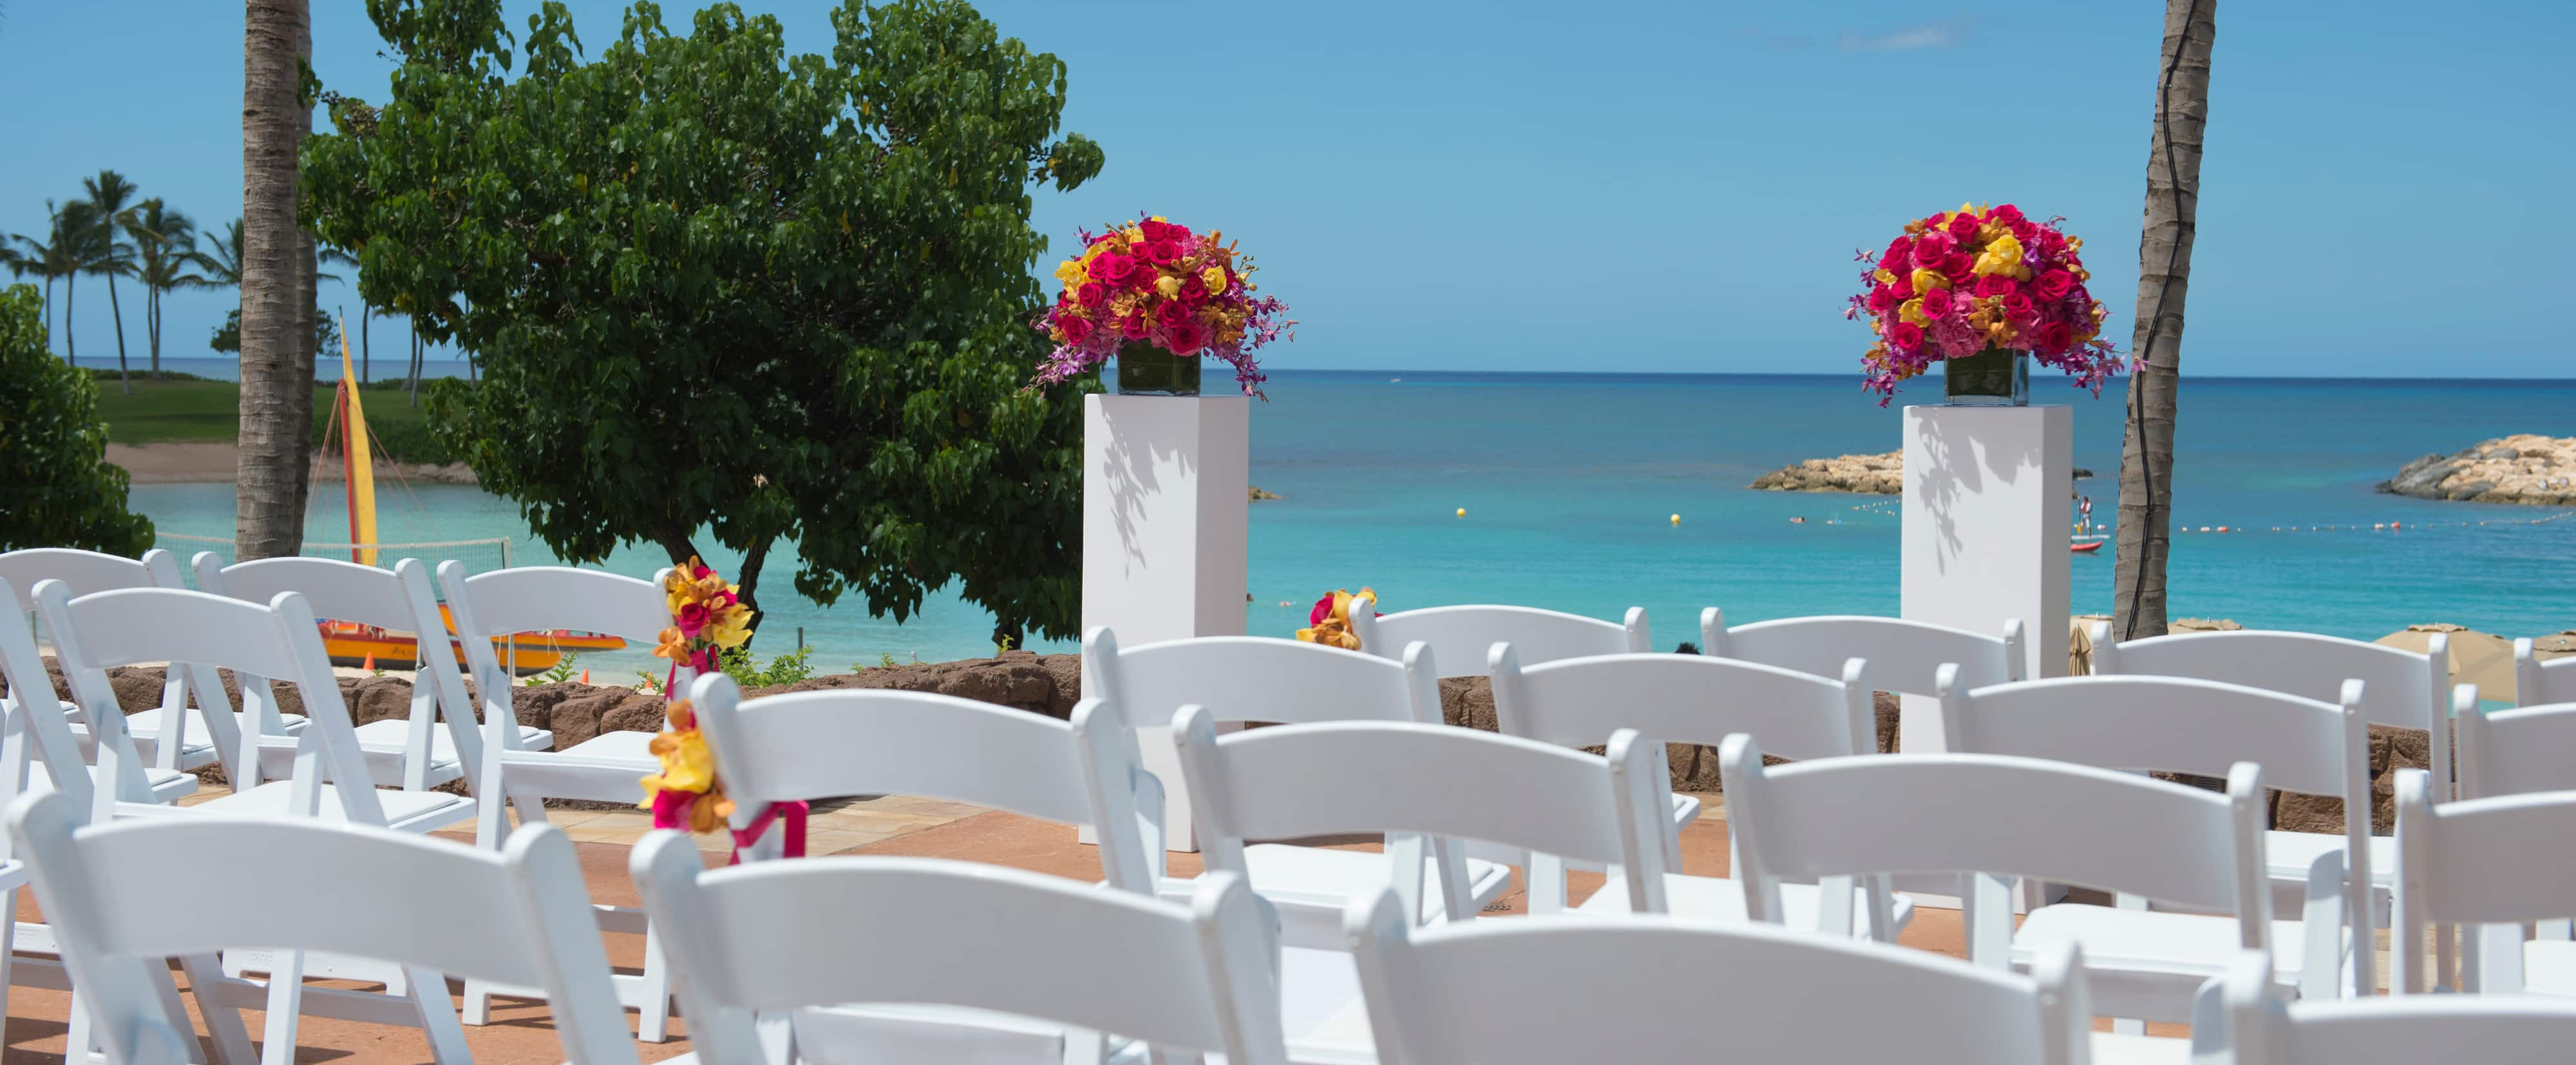 Rows of white chairs and 2 pillars with brightly colored floral arrangements overlook an azure ocean